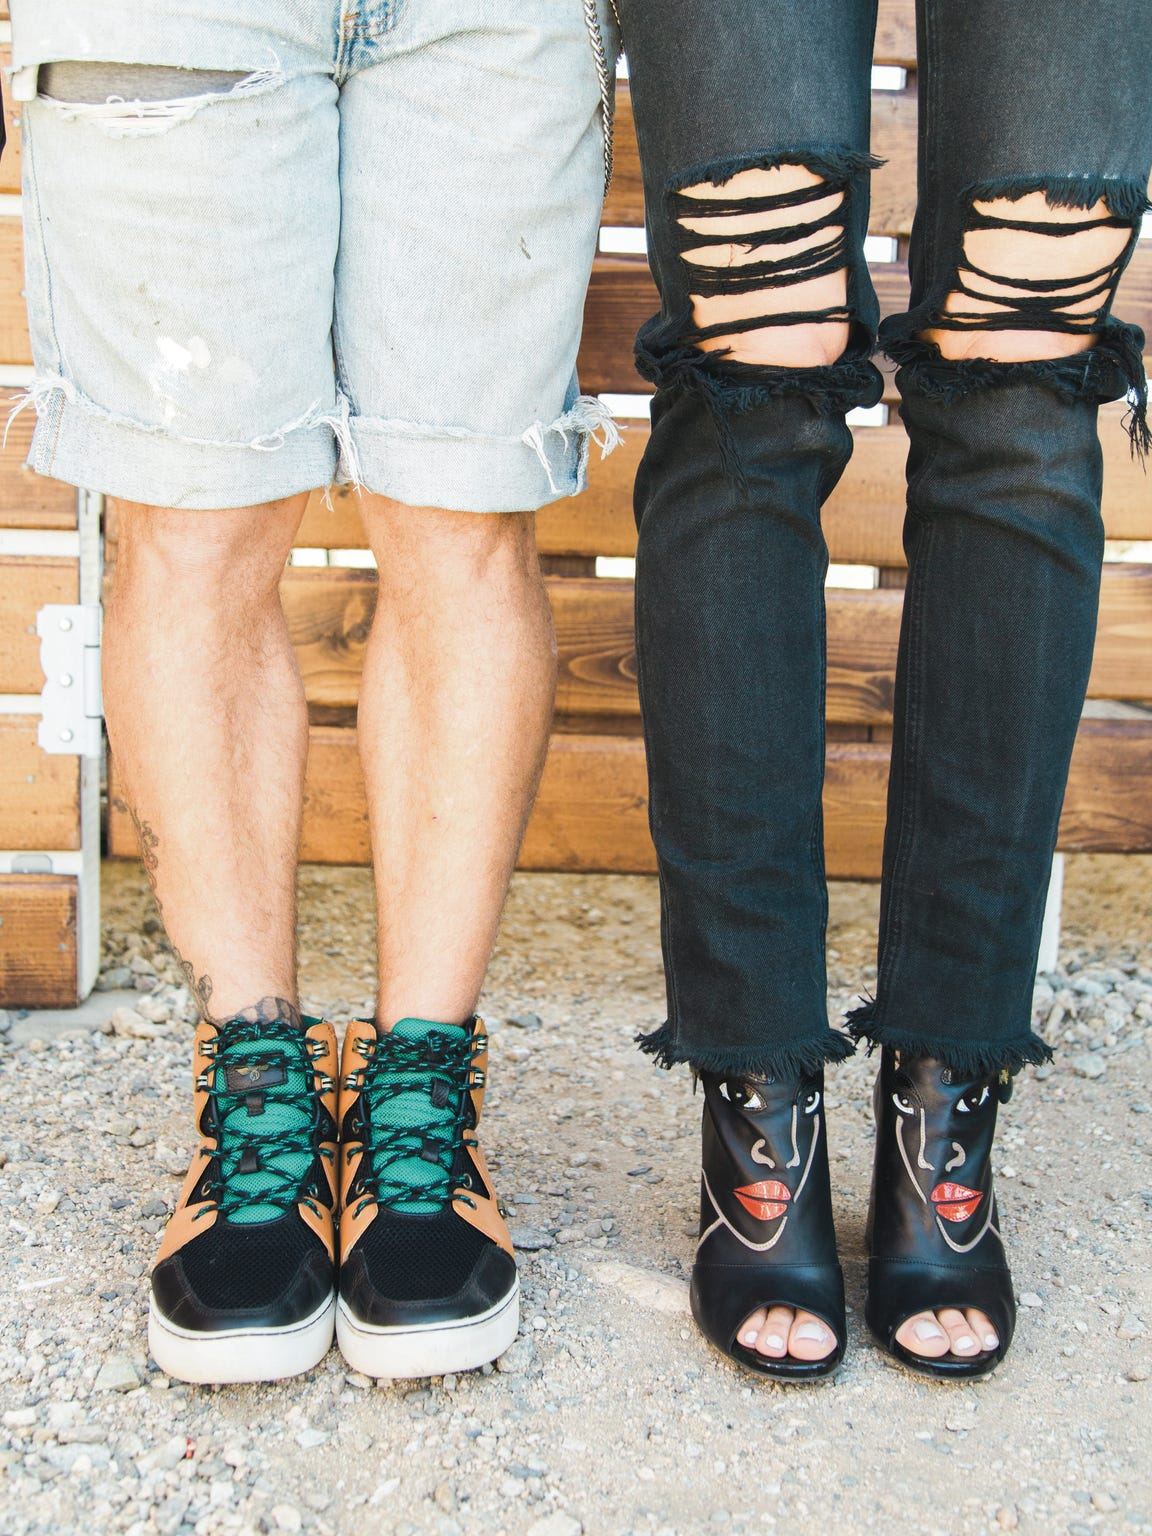 On Nikko (right): Creative Recreation shoes. On Tienlyn (left): Loriblu shoes.